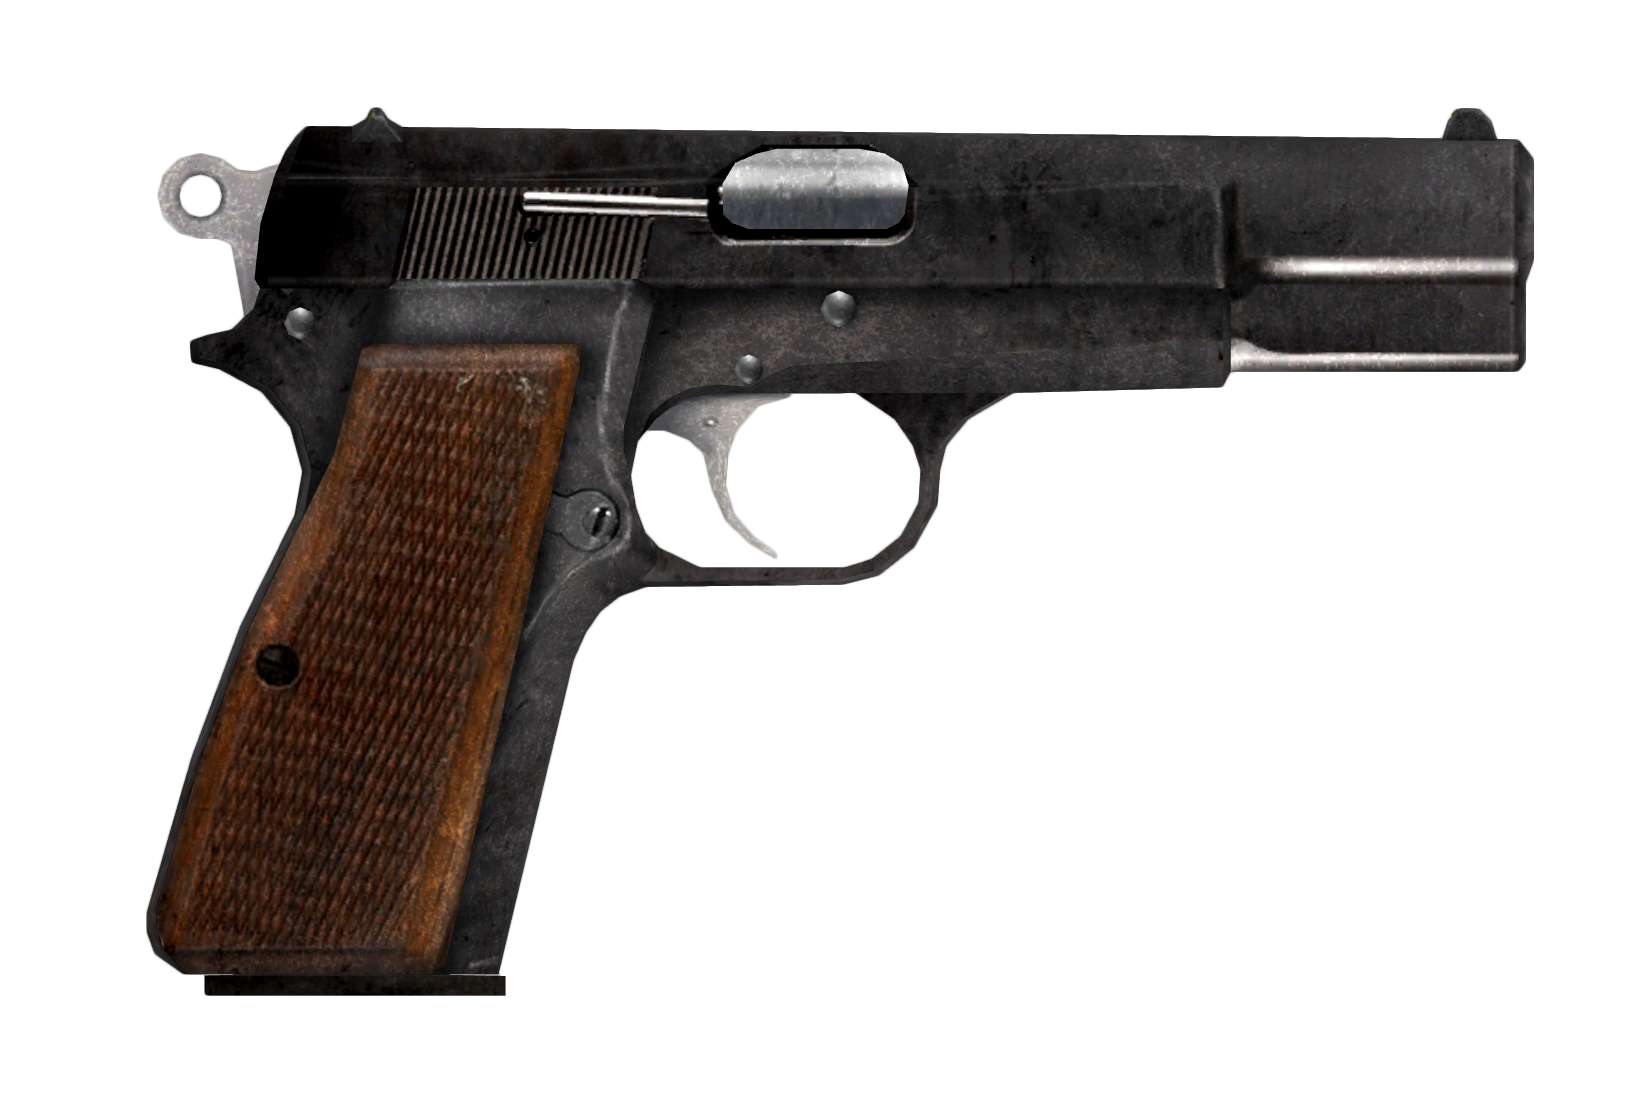 9mm pistol (Fallout: New Vegas) | Fallout Wiki | Fandom powered by ...